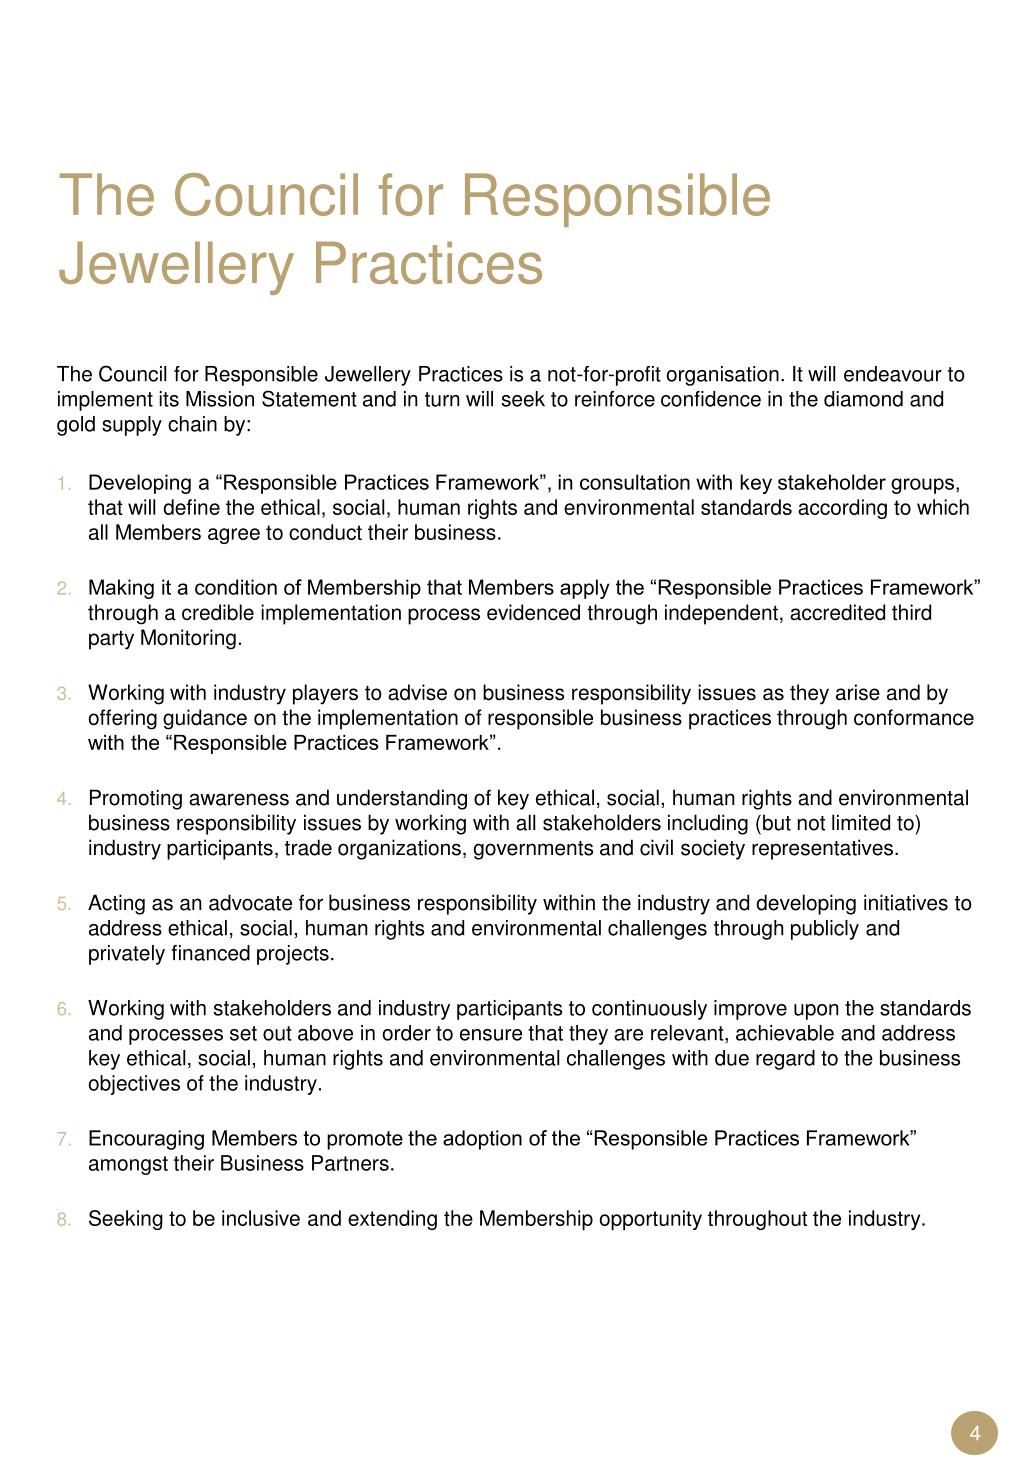 The Council for Responsible Jewellery Practices is a not-for-profit organisation. It will endeavour to implement its Mission Statement and in turn will seek to reinforce confidence in the diamond and gold supply chain by: